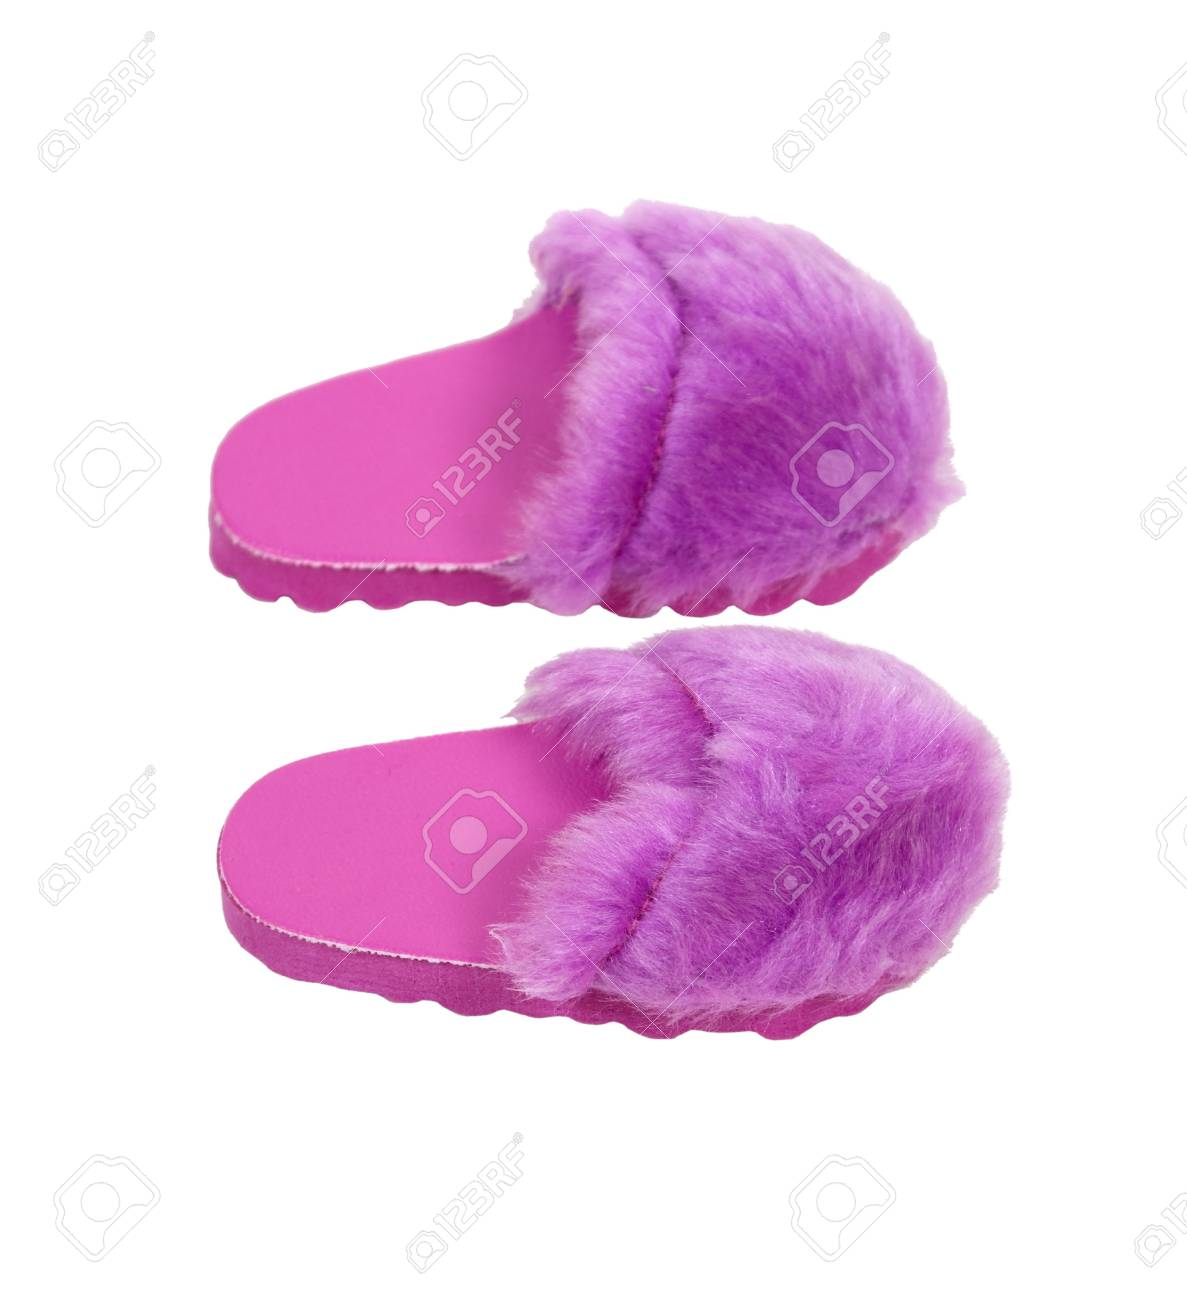 950ba0fc4e8 Fuzzy pink slippers to wear at home when relaxing in luxury Stock Photo -  7314214